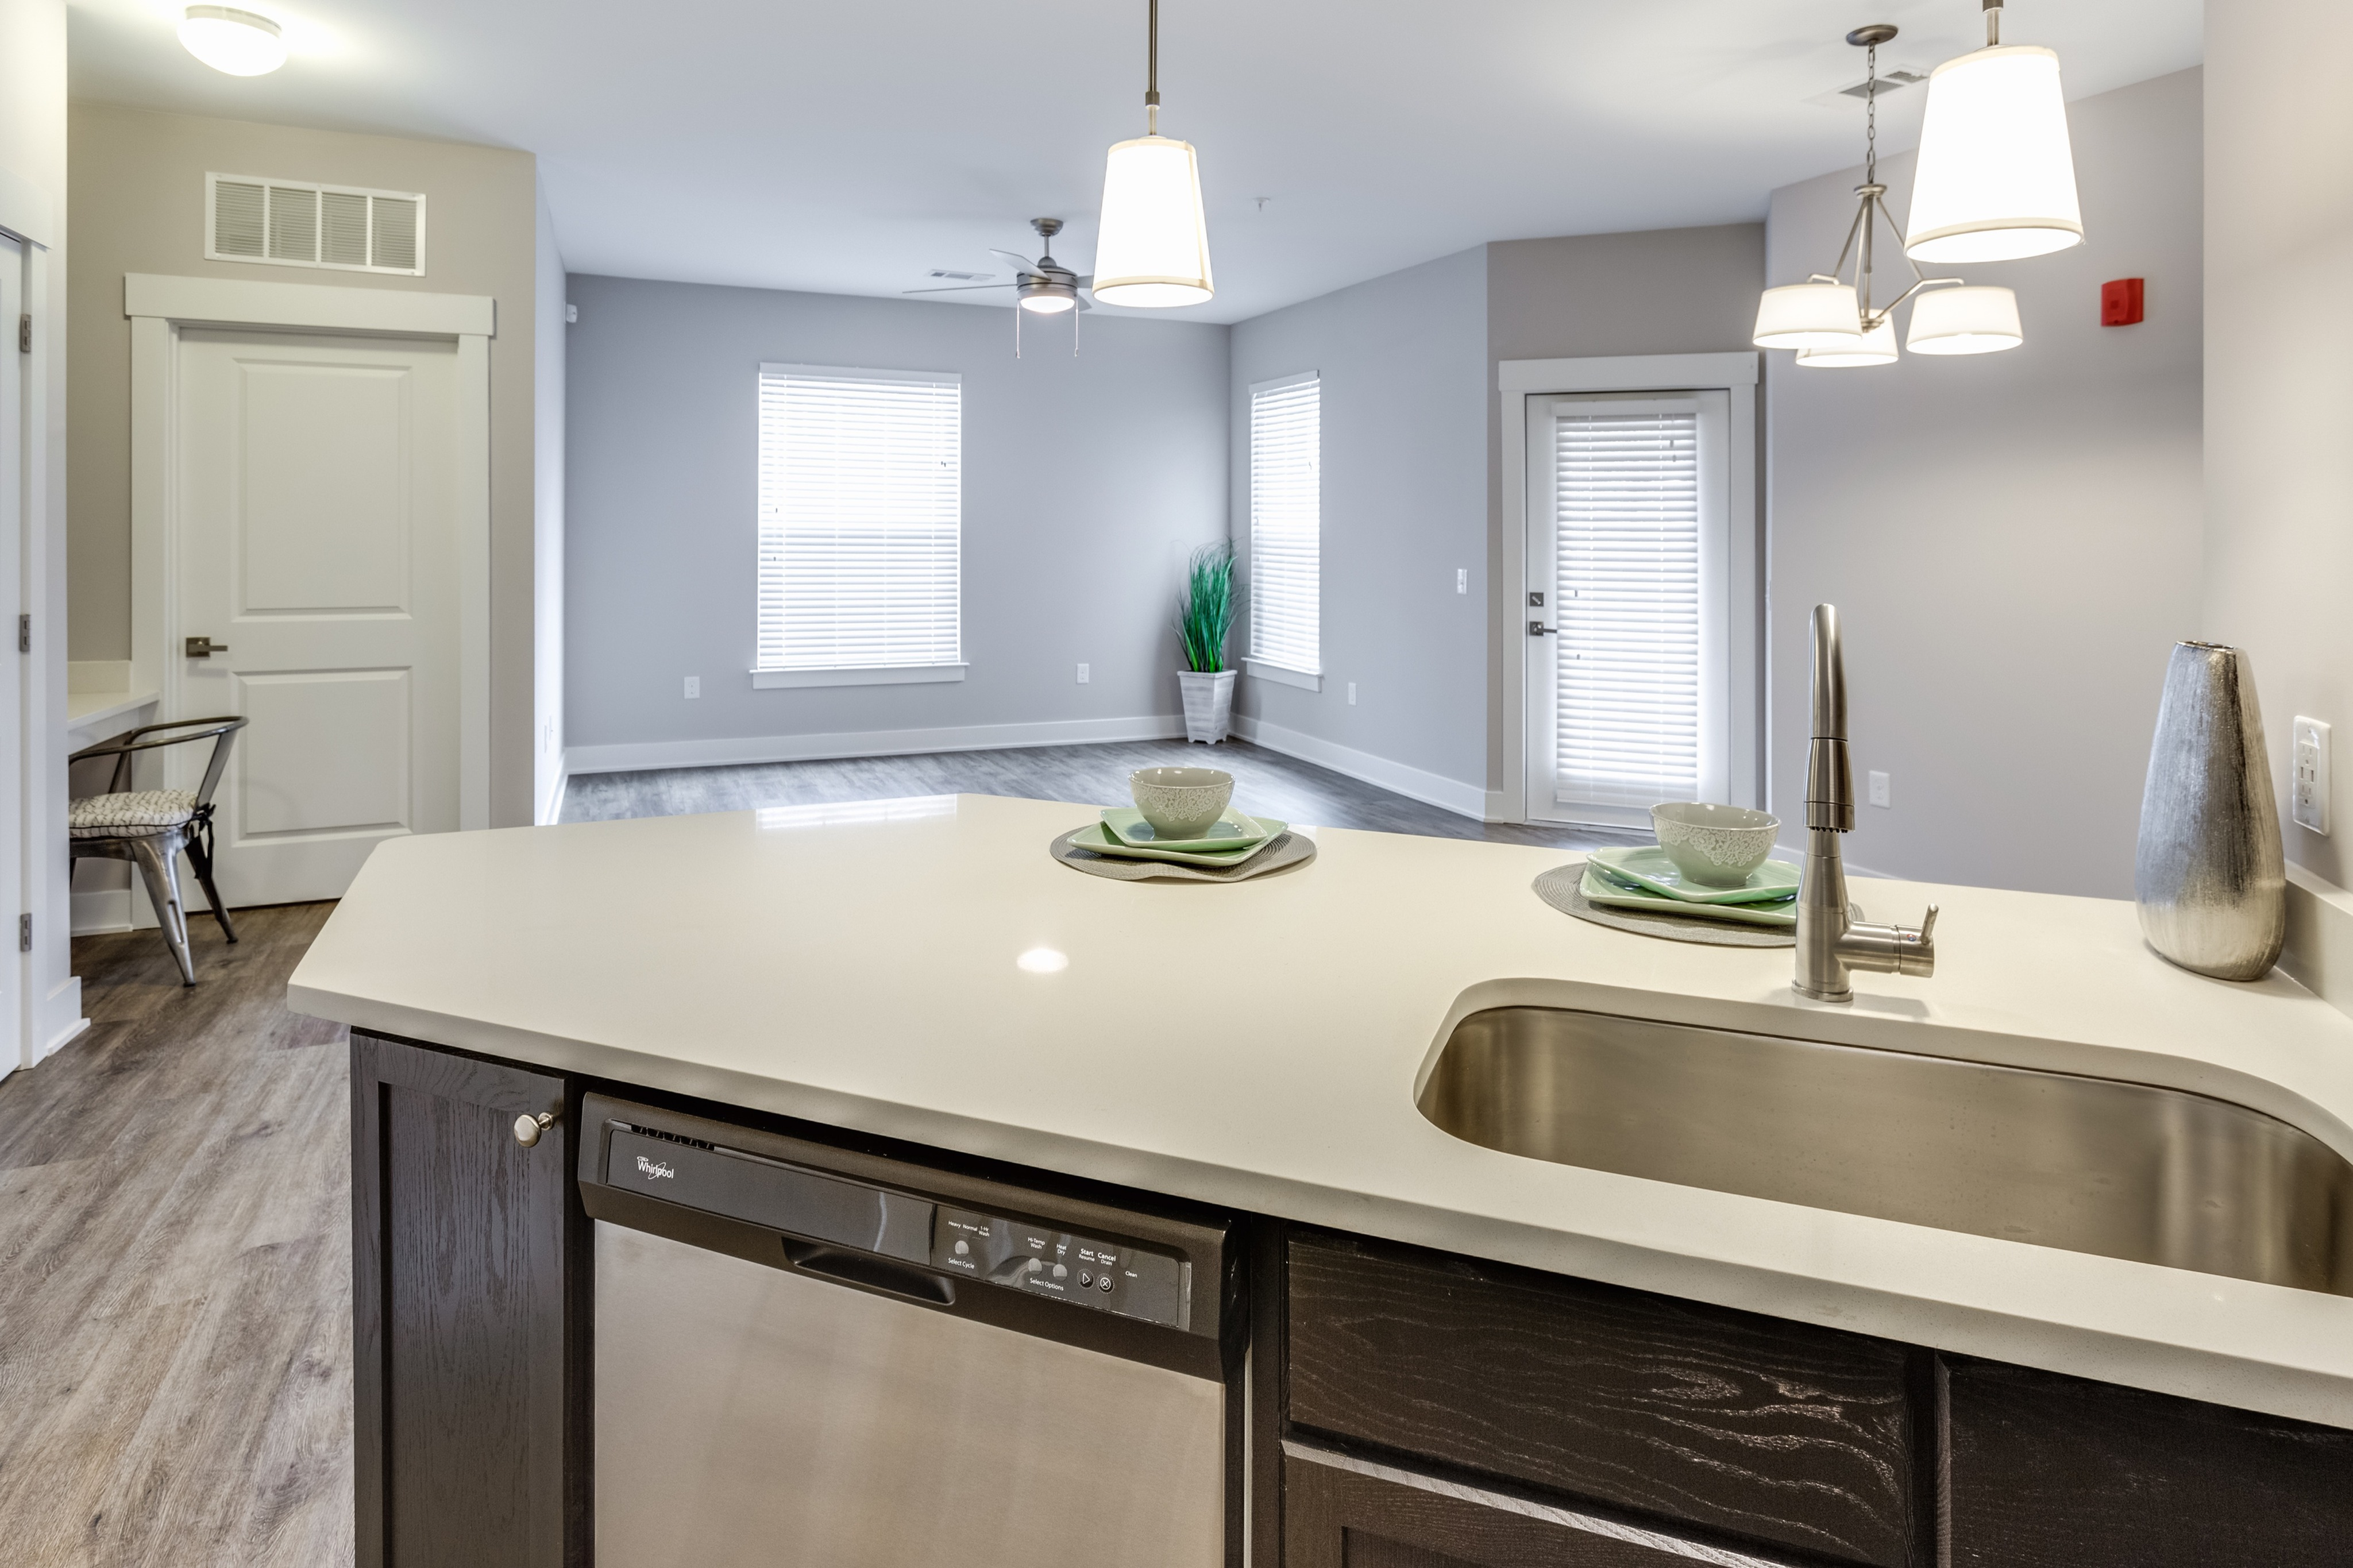 Image of Quartz Counter Tops* for Cottonwood Reserve